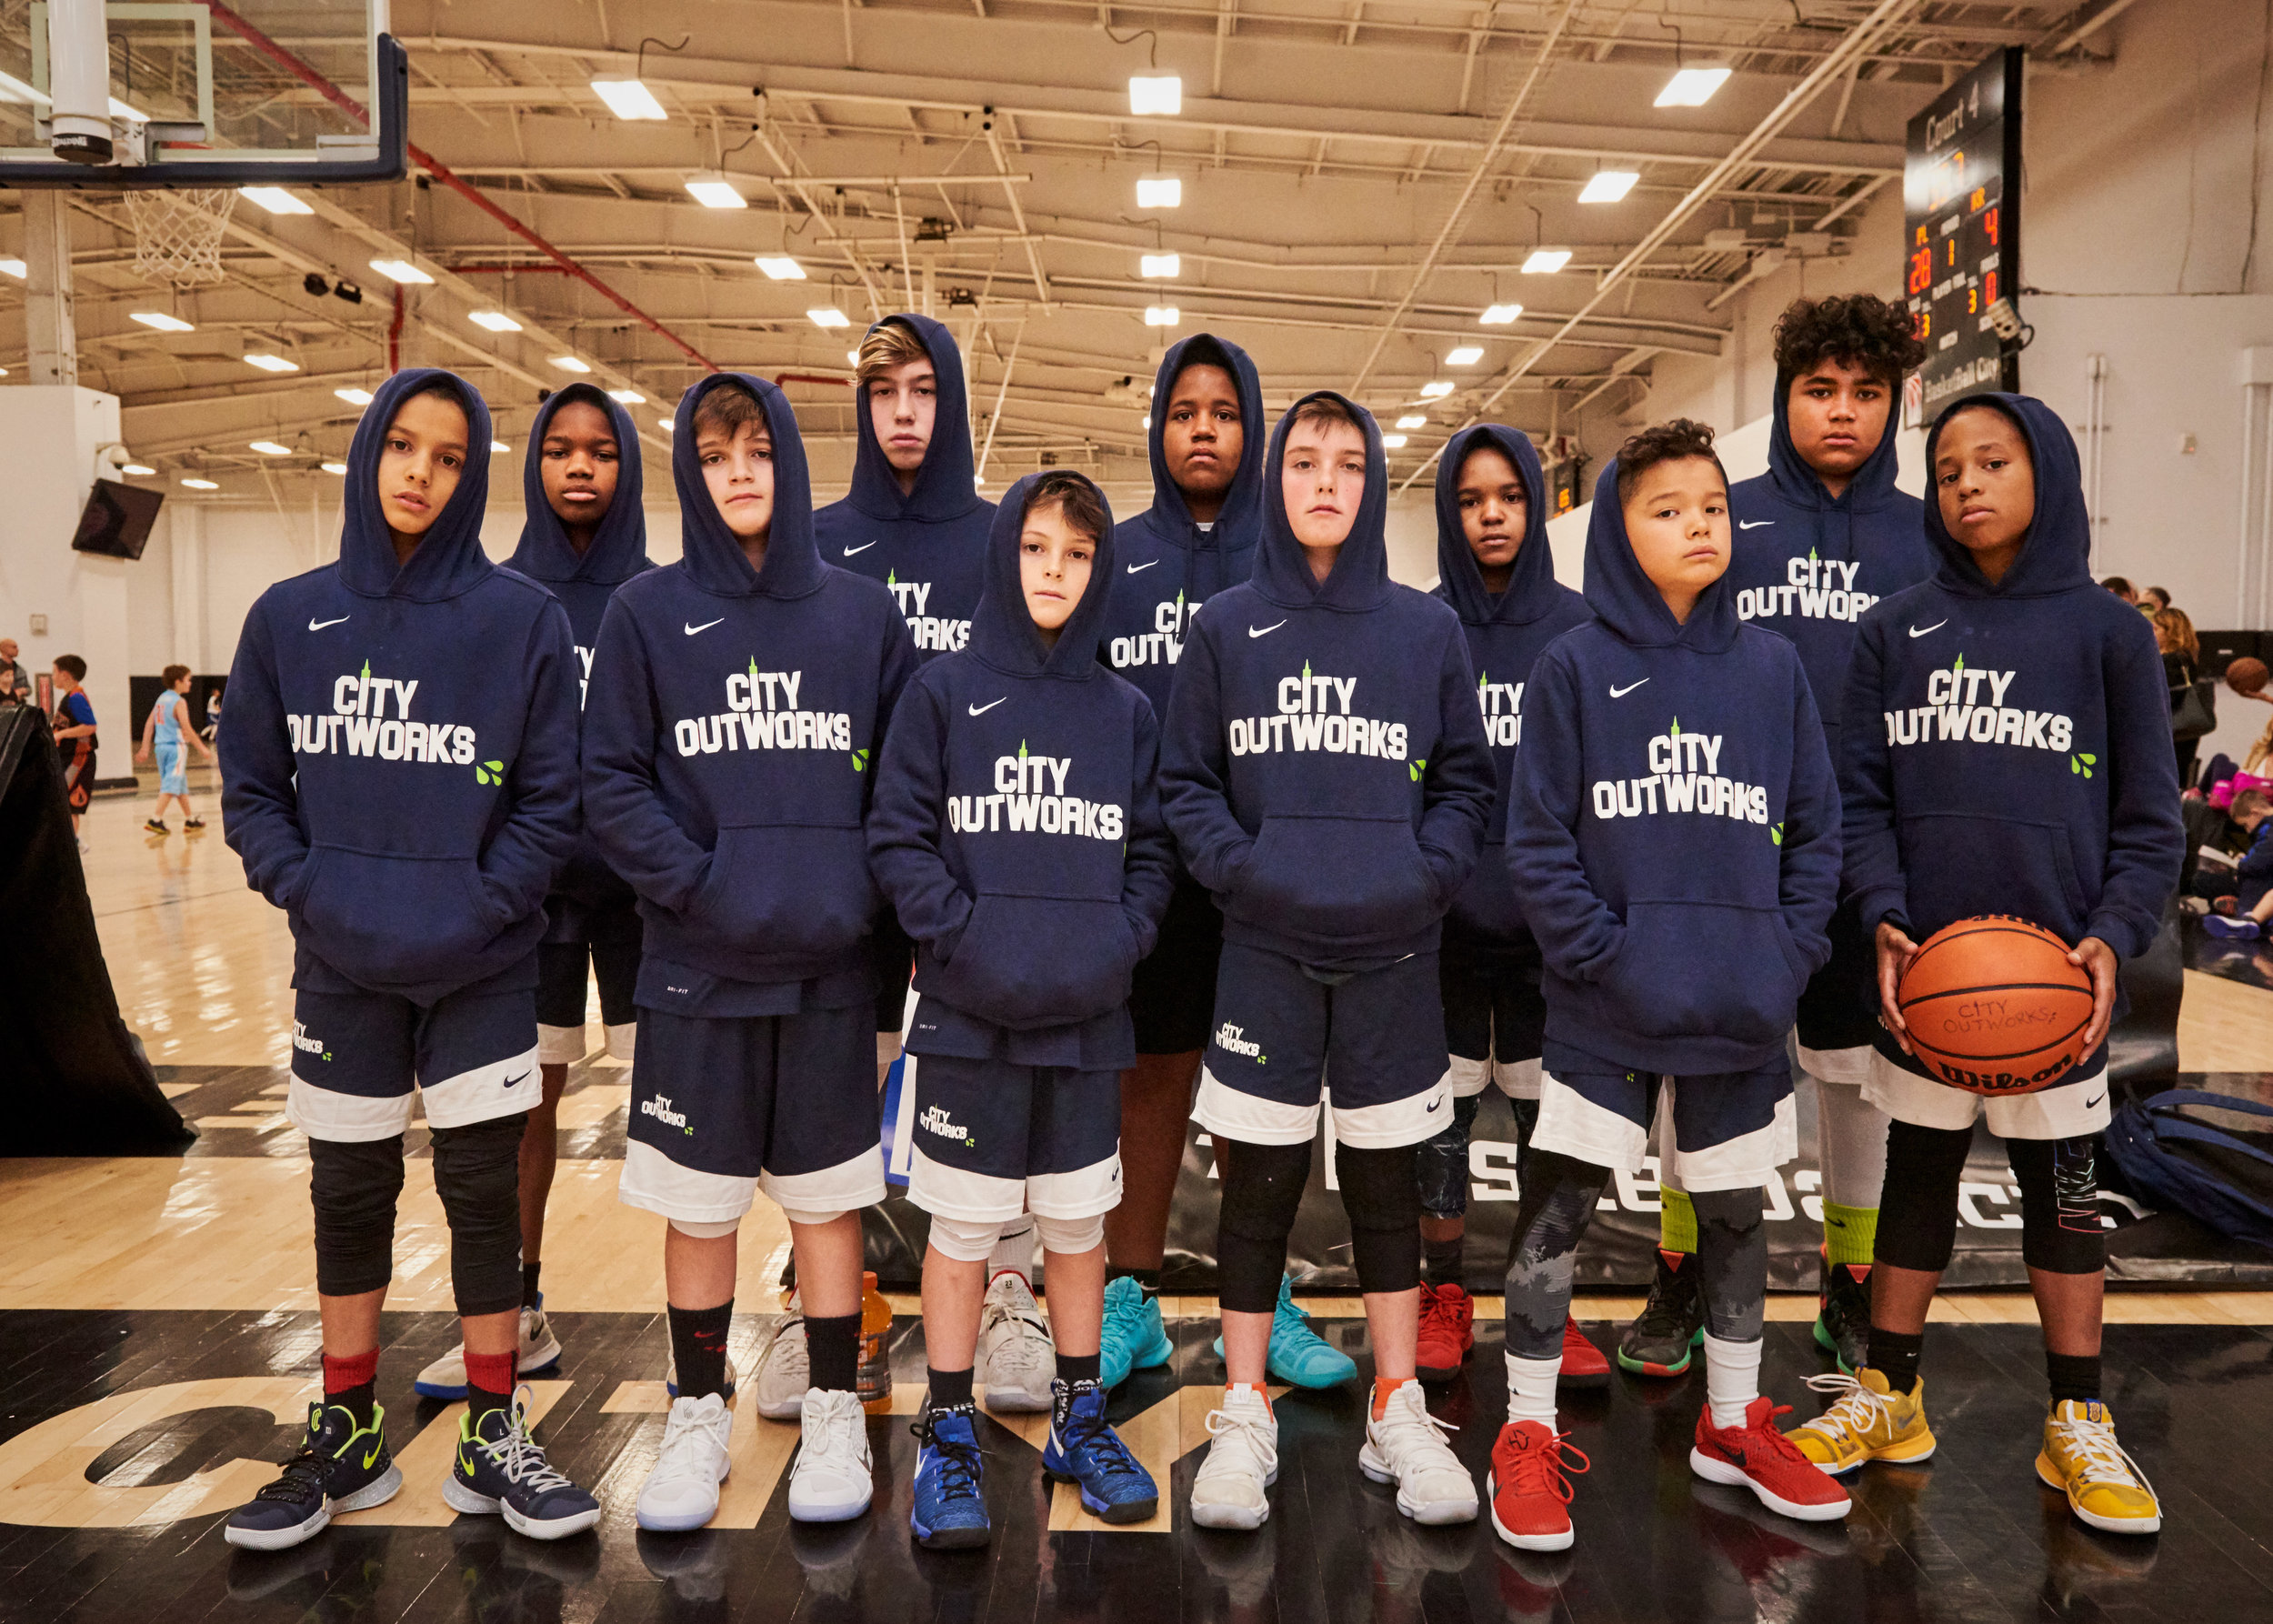 City Outowrks first ever AAU team was formed in the fall of 2017. [Photo Credit: kenmoorephoto.com]